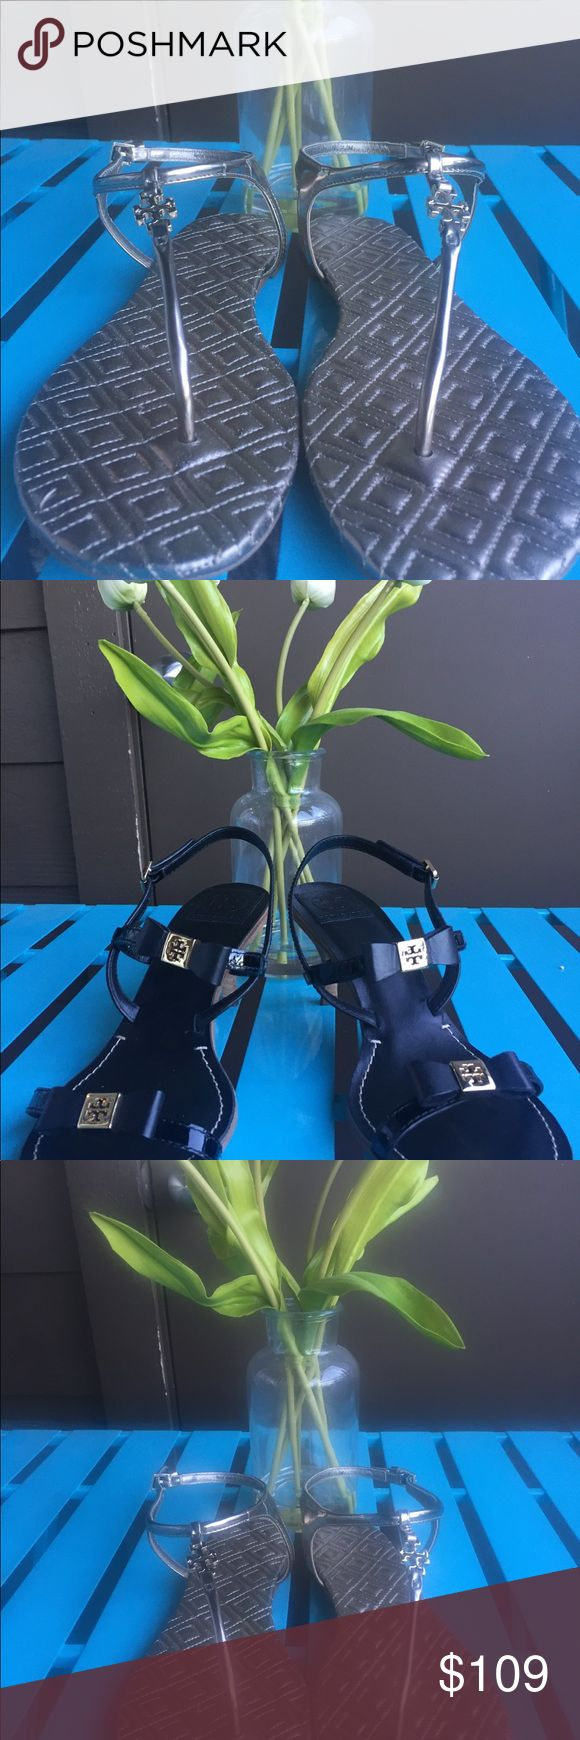 NEW TORY BURCH FLAT METALLIC SANDAL GORGEOUS METTALIC PEWTER SANDAL WITH TORY BURCH LOGO HARDWARE. ADJUSTABLE ANKLE STRAP AND RUBBER SOLE FOR ADDED COMFORT. REALLY CUTE!! Tory Burch Shoes Sandals